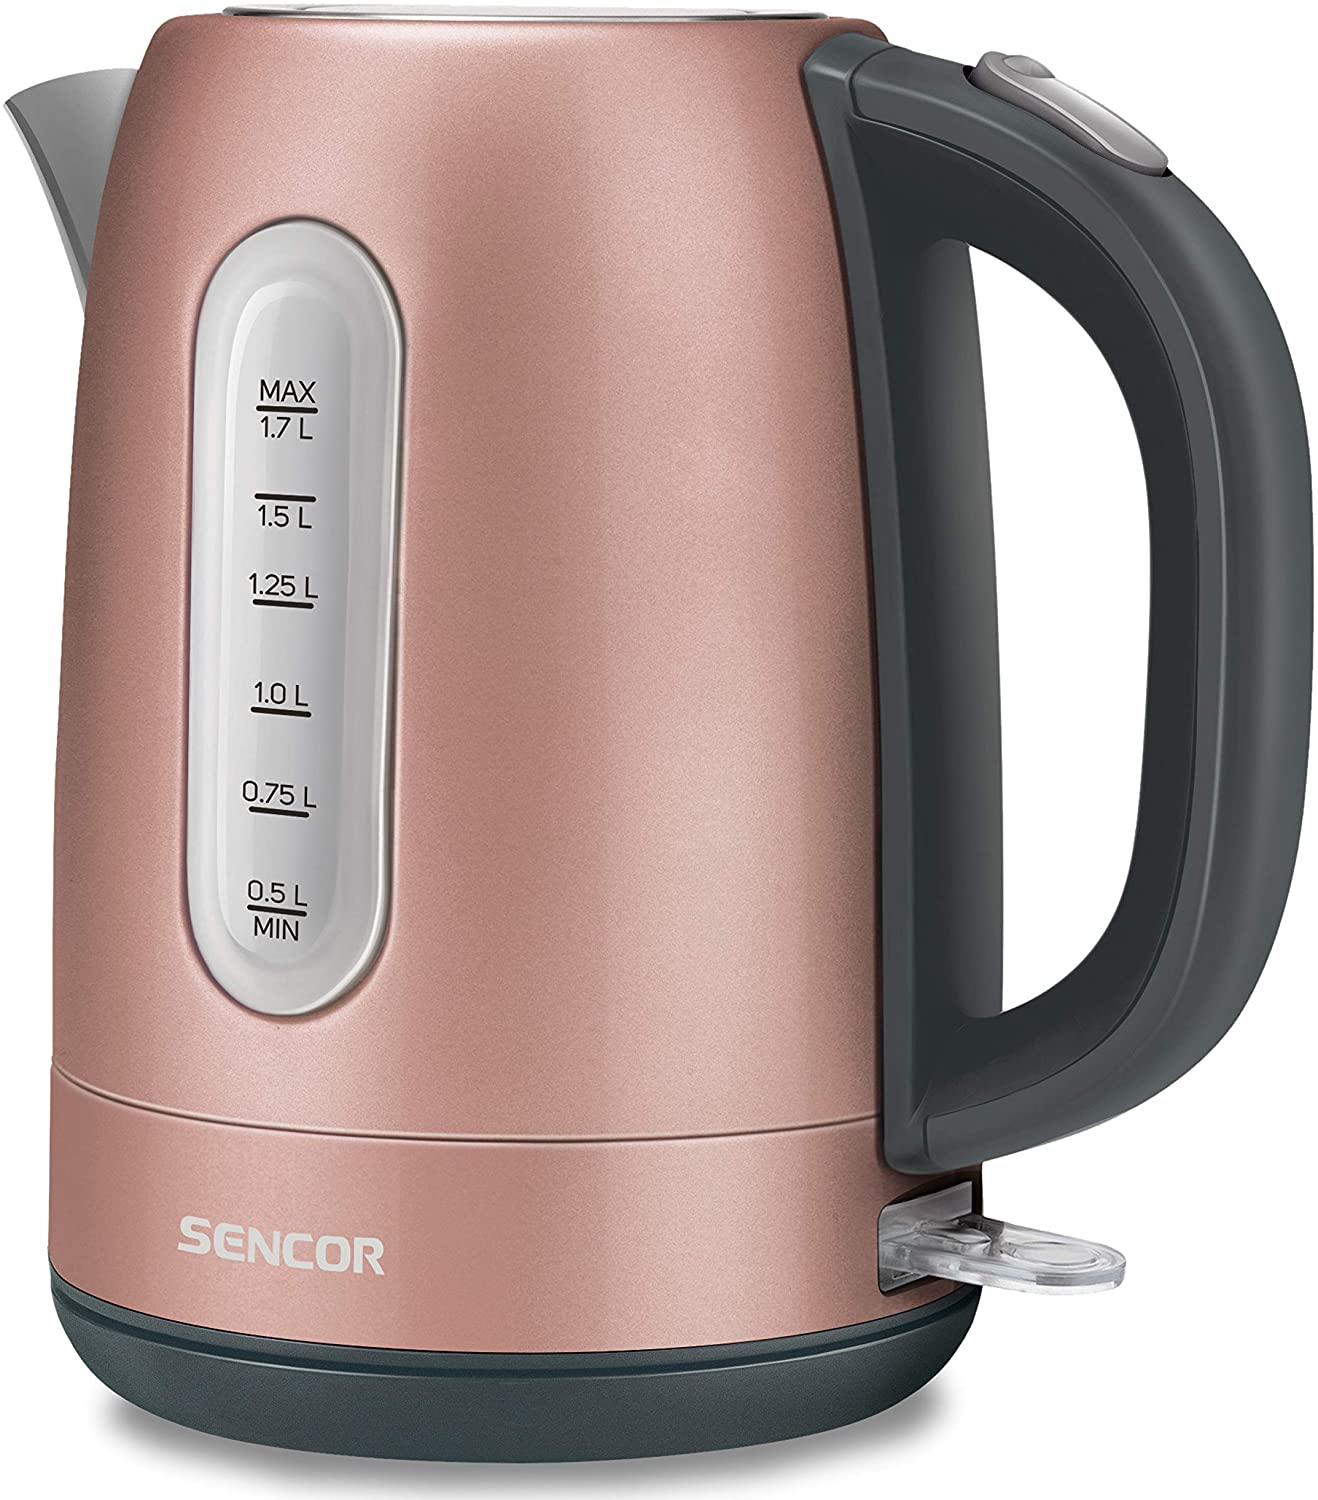 Sencor SWK1775RS 1.7L Stainless Steel Electric Kettle with Lid Safety Lock, Pink